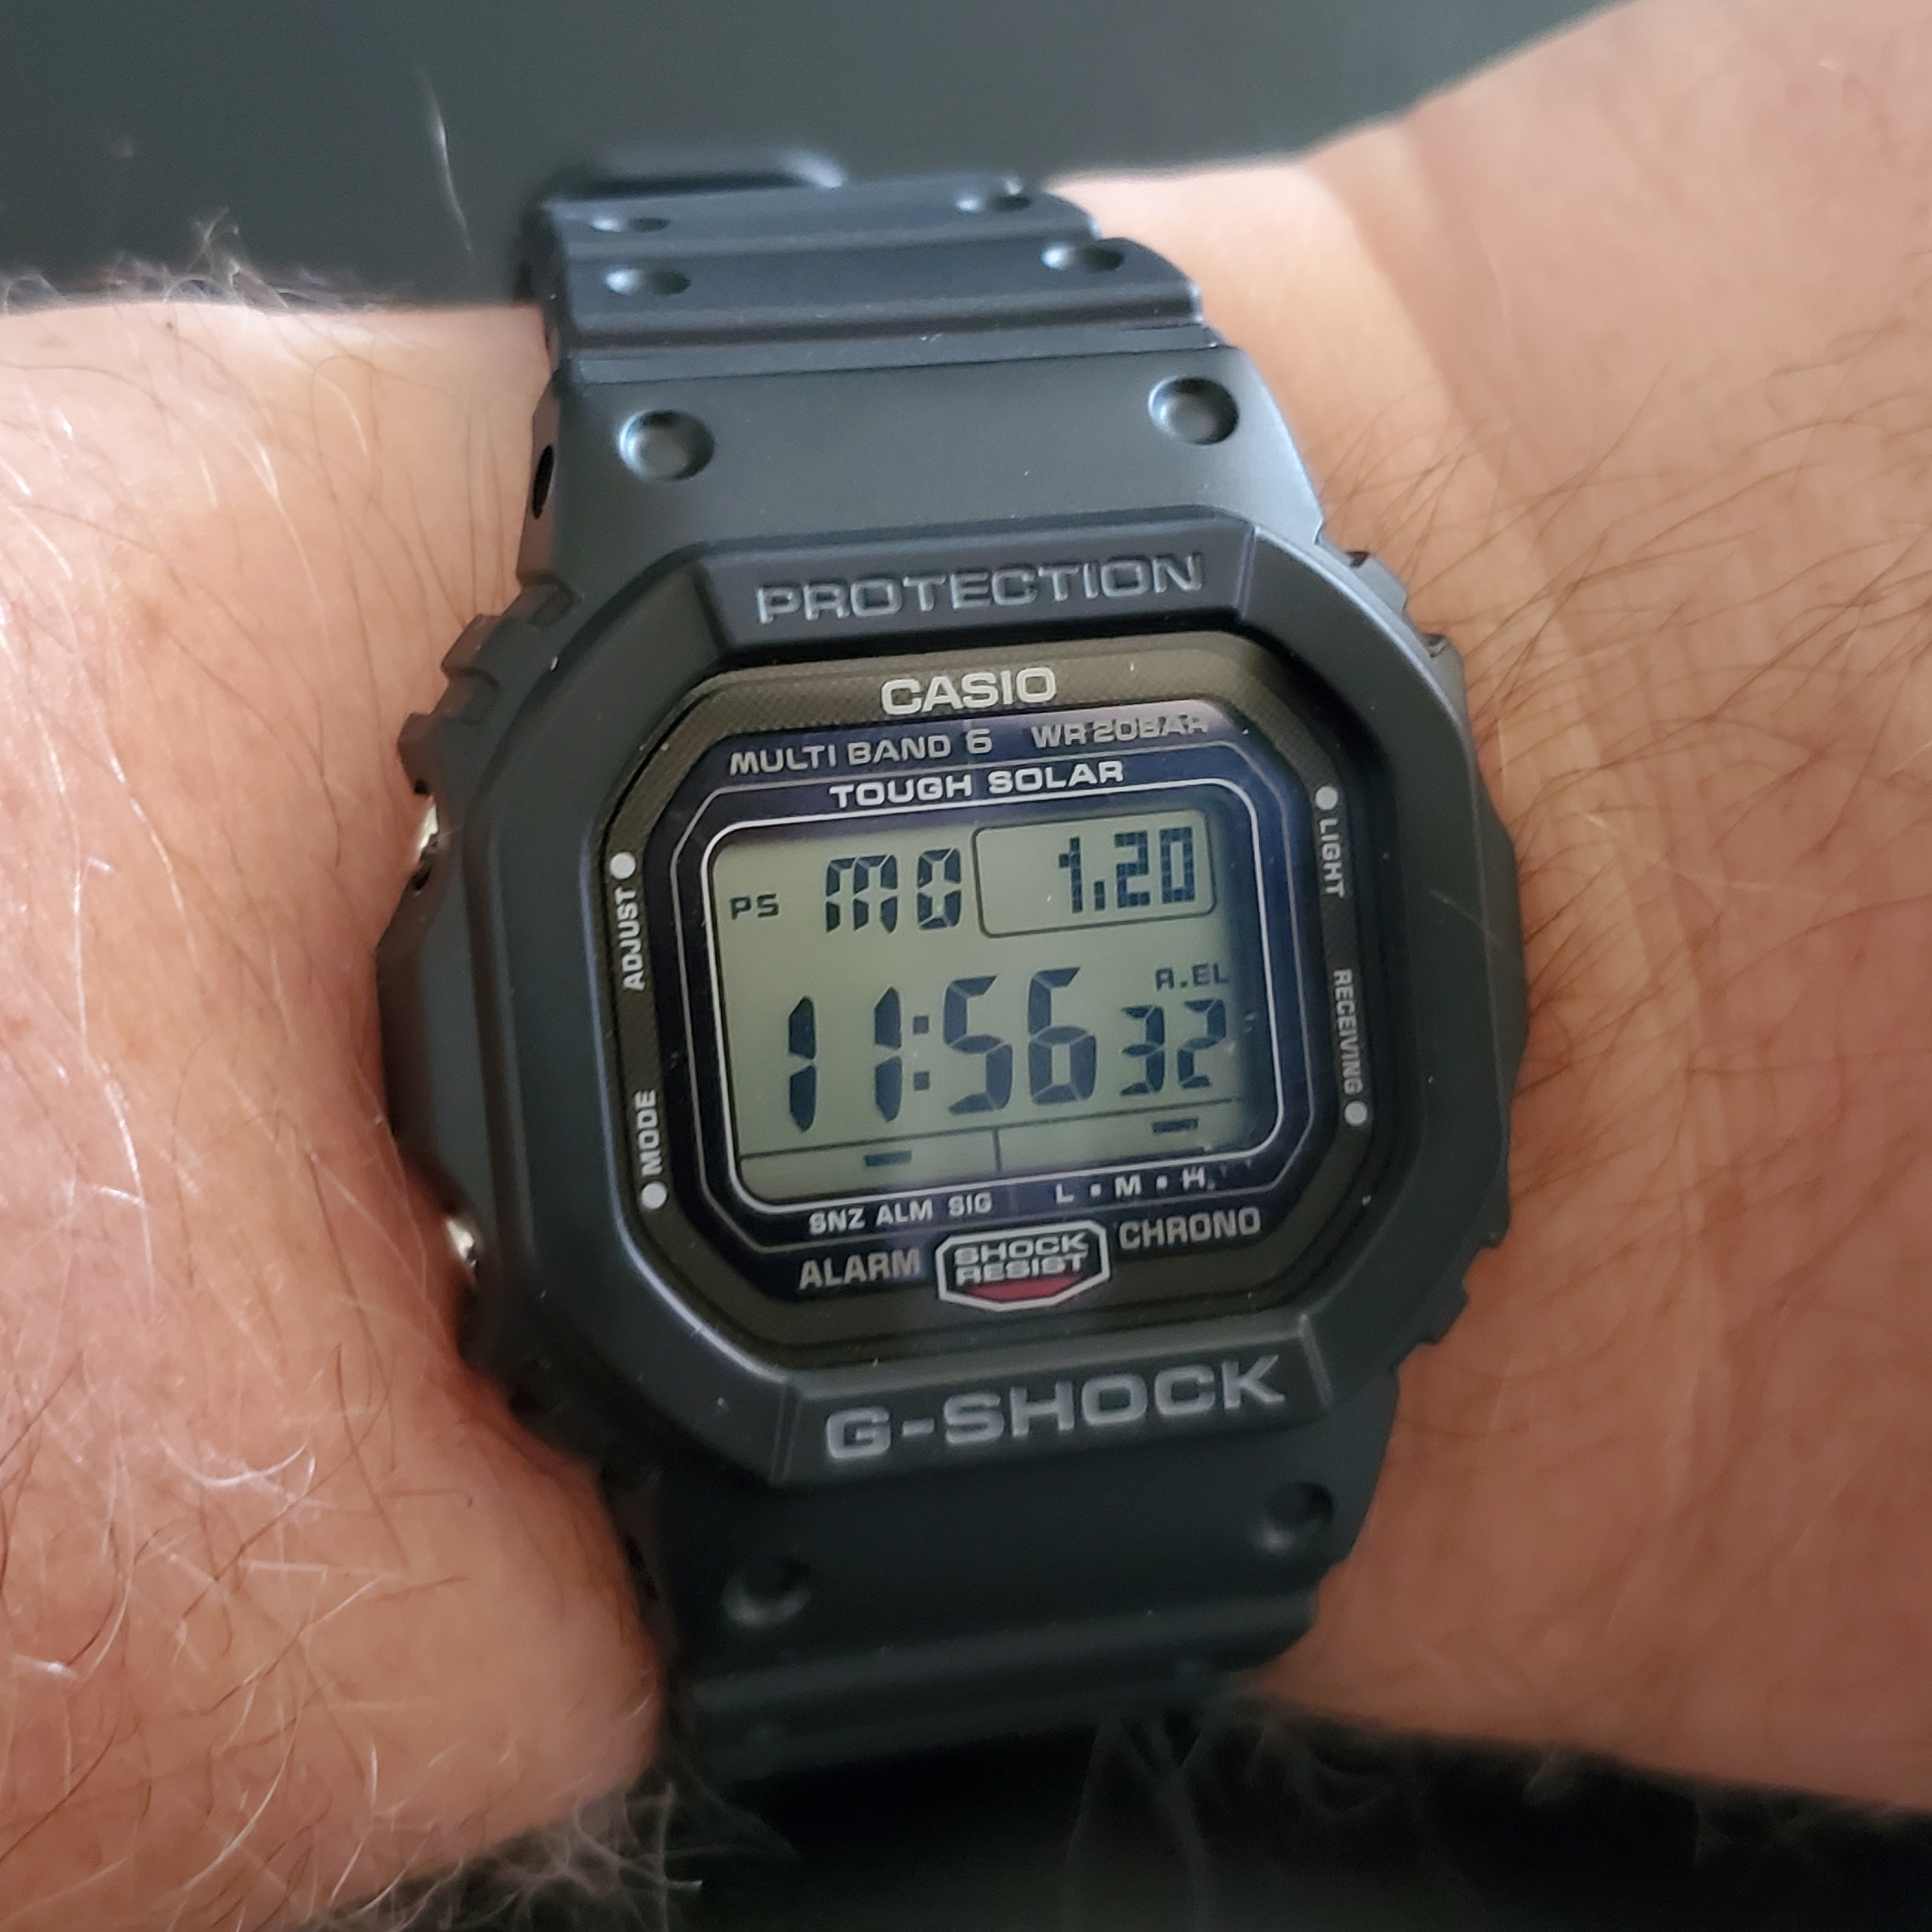 Turns out my perfect watch was always a Casio G-Shock GW-5000 Square